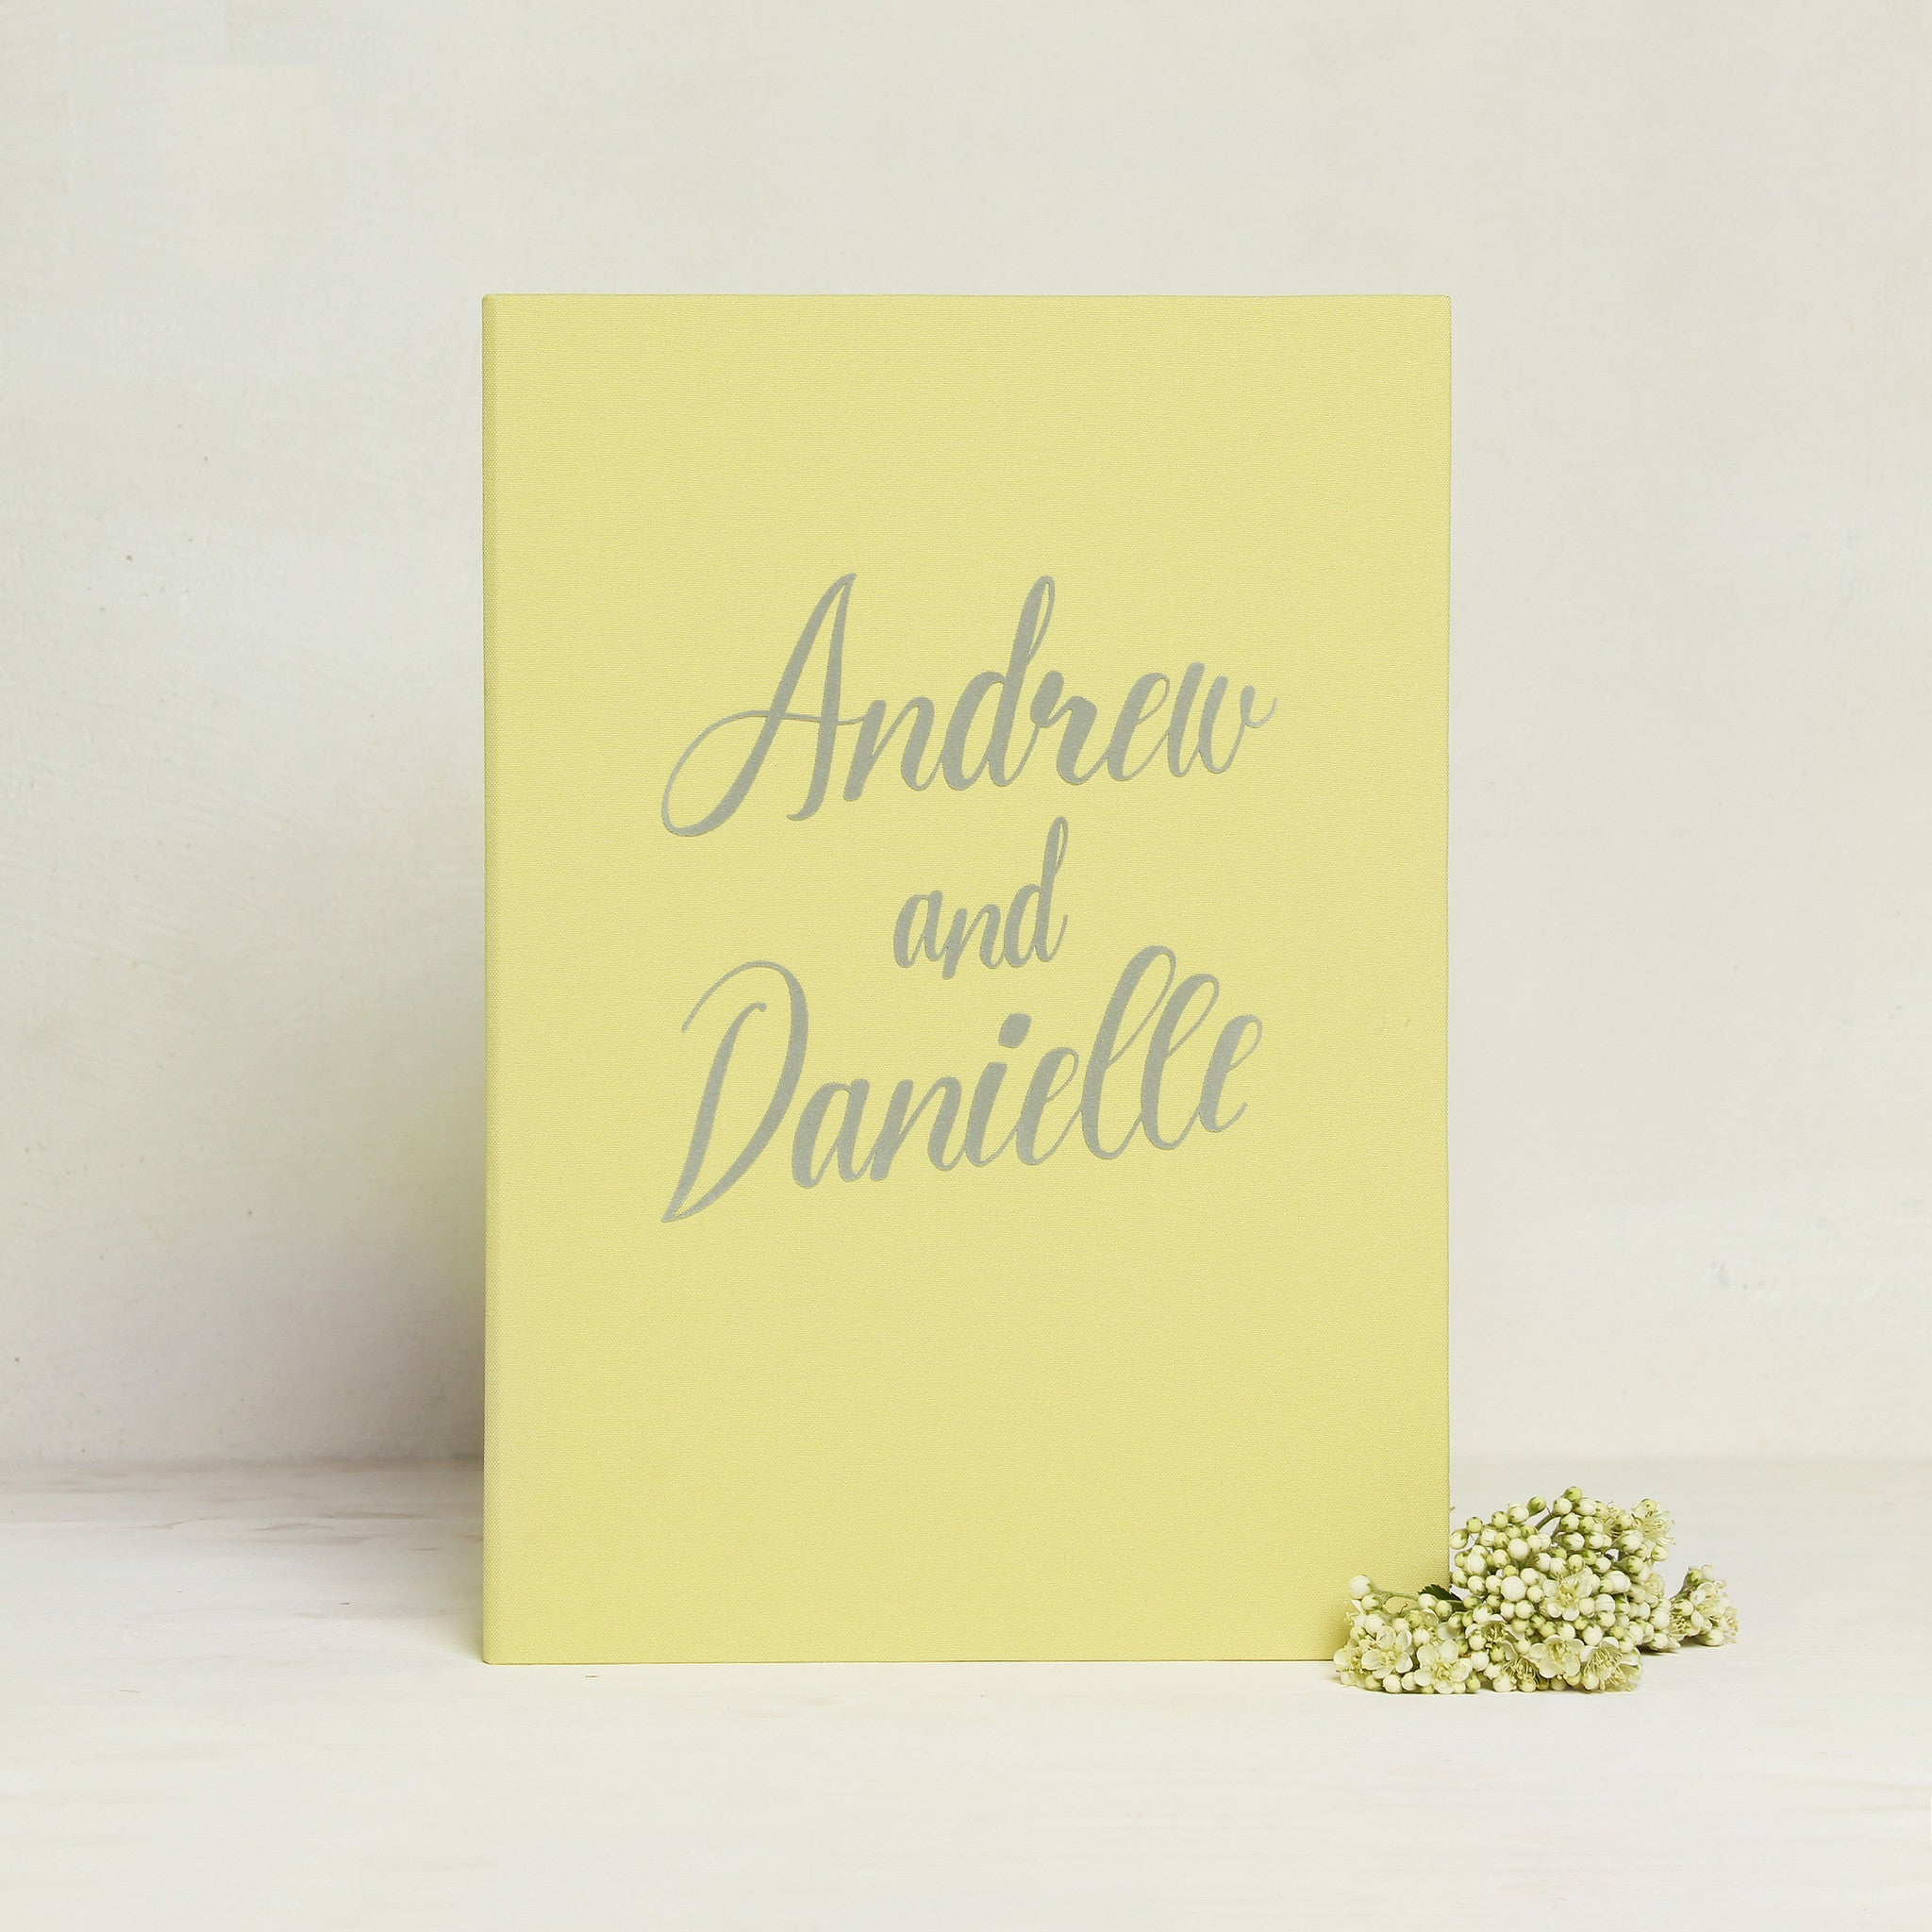 Instant Wedding Guest Book Album Instax Yellow with Gray Velour Lettering - Liumy